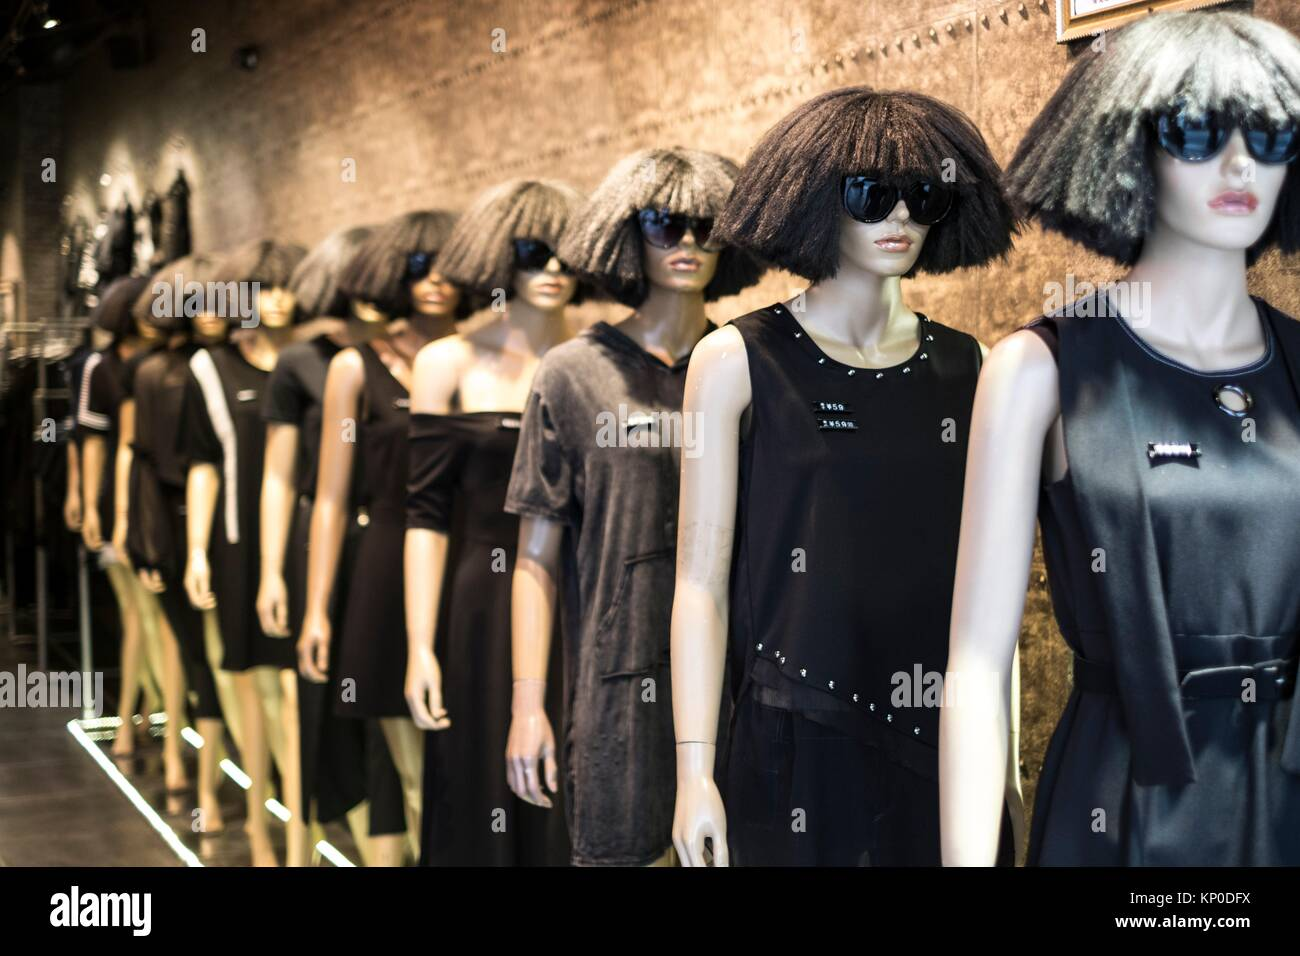 Mannequins with latest fashion on display in Guangzhou, China. - Stock Image